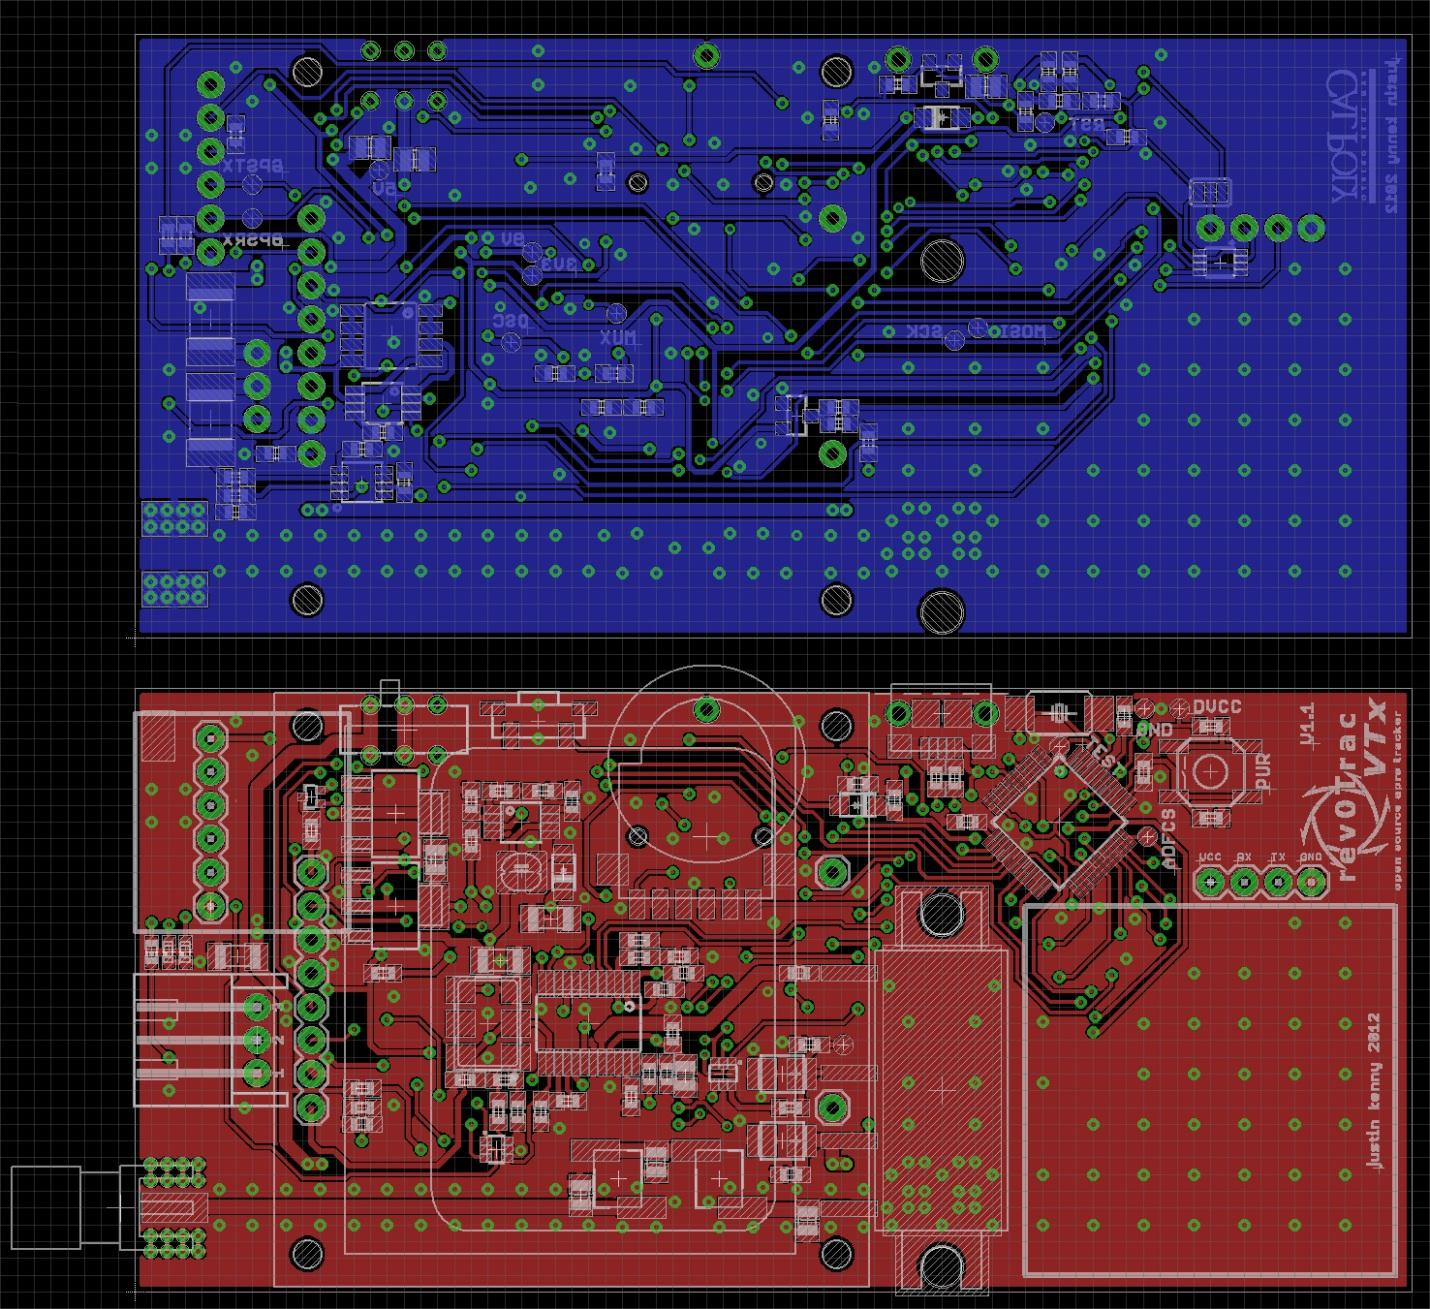 All In One Aprs Transmitter Pdf 15v Tracking C Pcb Layout List Of Changes Version 1